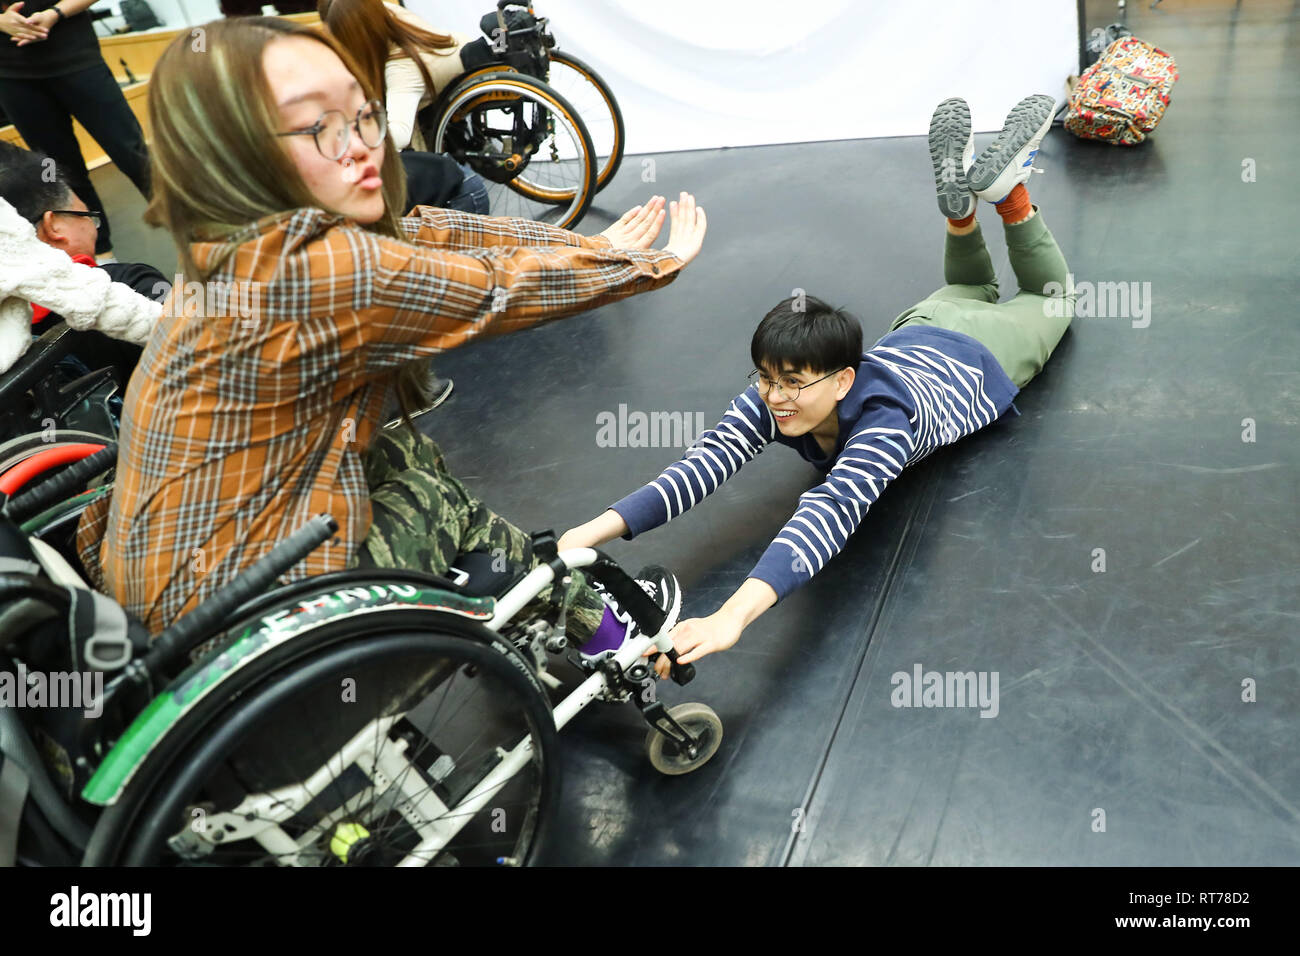 (190228) -- BEIJING, Feb. 28, 2019 (Xinhua) -- Rare disease patients Ding Yuan (L) and Pan Longfei take a body training during an acting workshop for 'Rare Hug', a drama on rare diseases, at Beijing Tianqiao Performance Arts Center in Beijing, capital of China, Feb. 21, 2019. 'Rare Hug,' a Chinese drama on rare diseases, was staged at the Beijing Tianqiao Performing Arts Center Wednesday evening to mark the 12th Rare Disease Day, which falls on Feb. 28, 2019 under the theme 'Bridging Health and Social Care.'     The drama was played by rare disease patients in collaboration with their relative - Stock Image